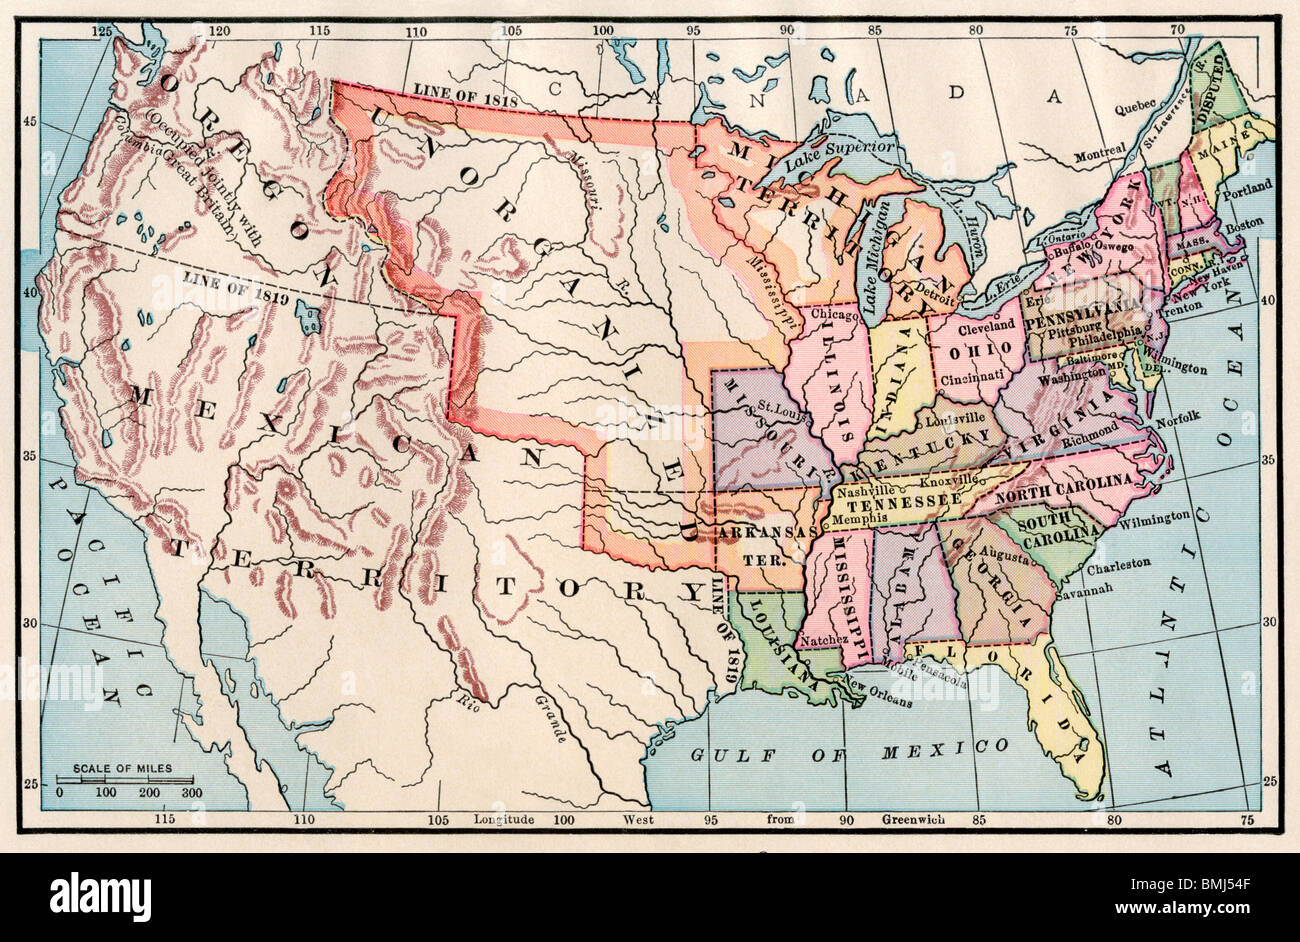 Map of the United States in 1830 Stock Photo Royalty Free Image